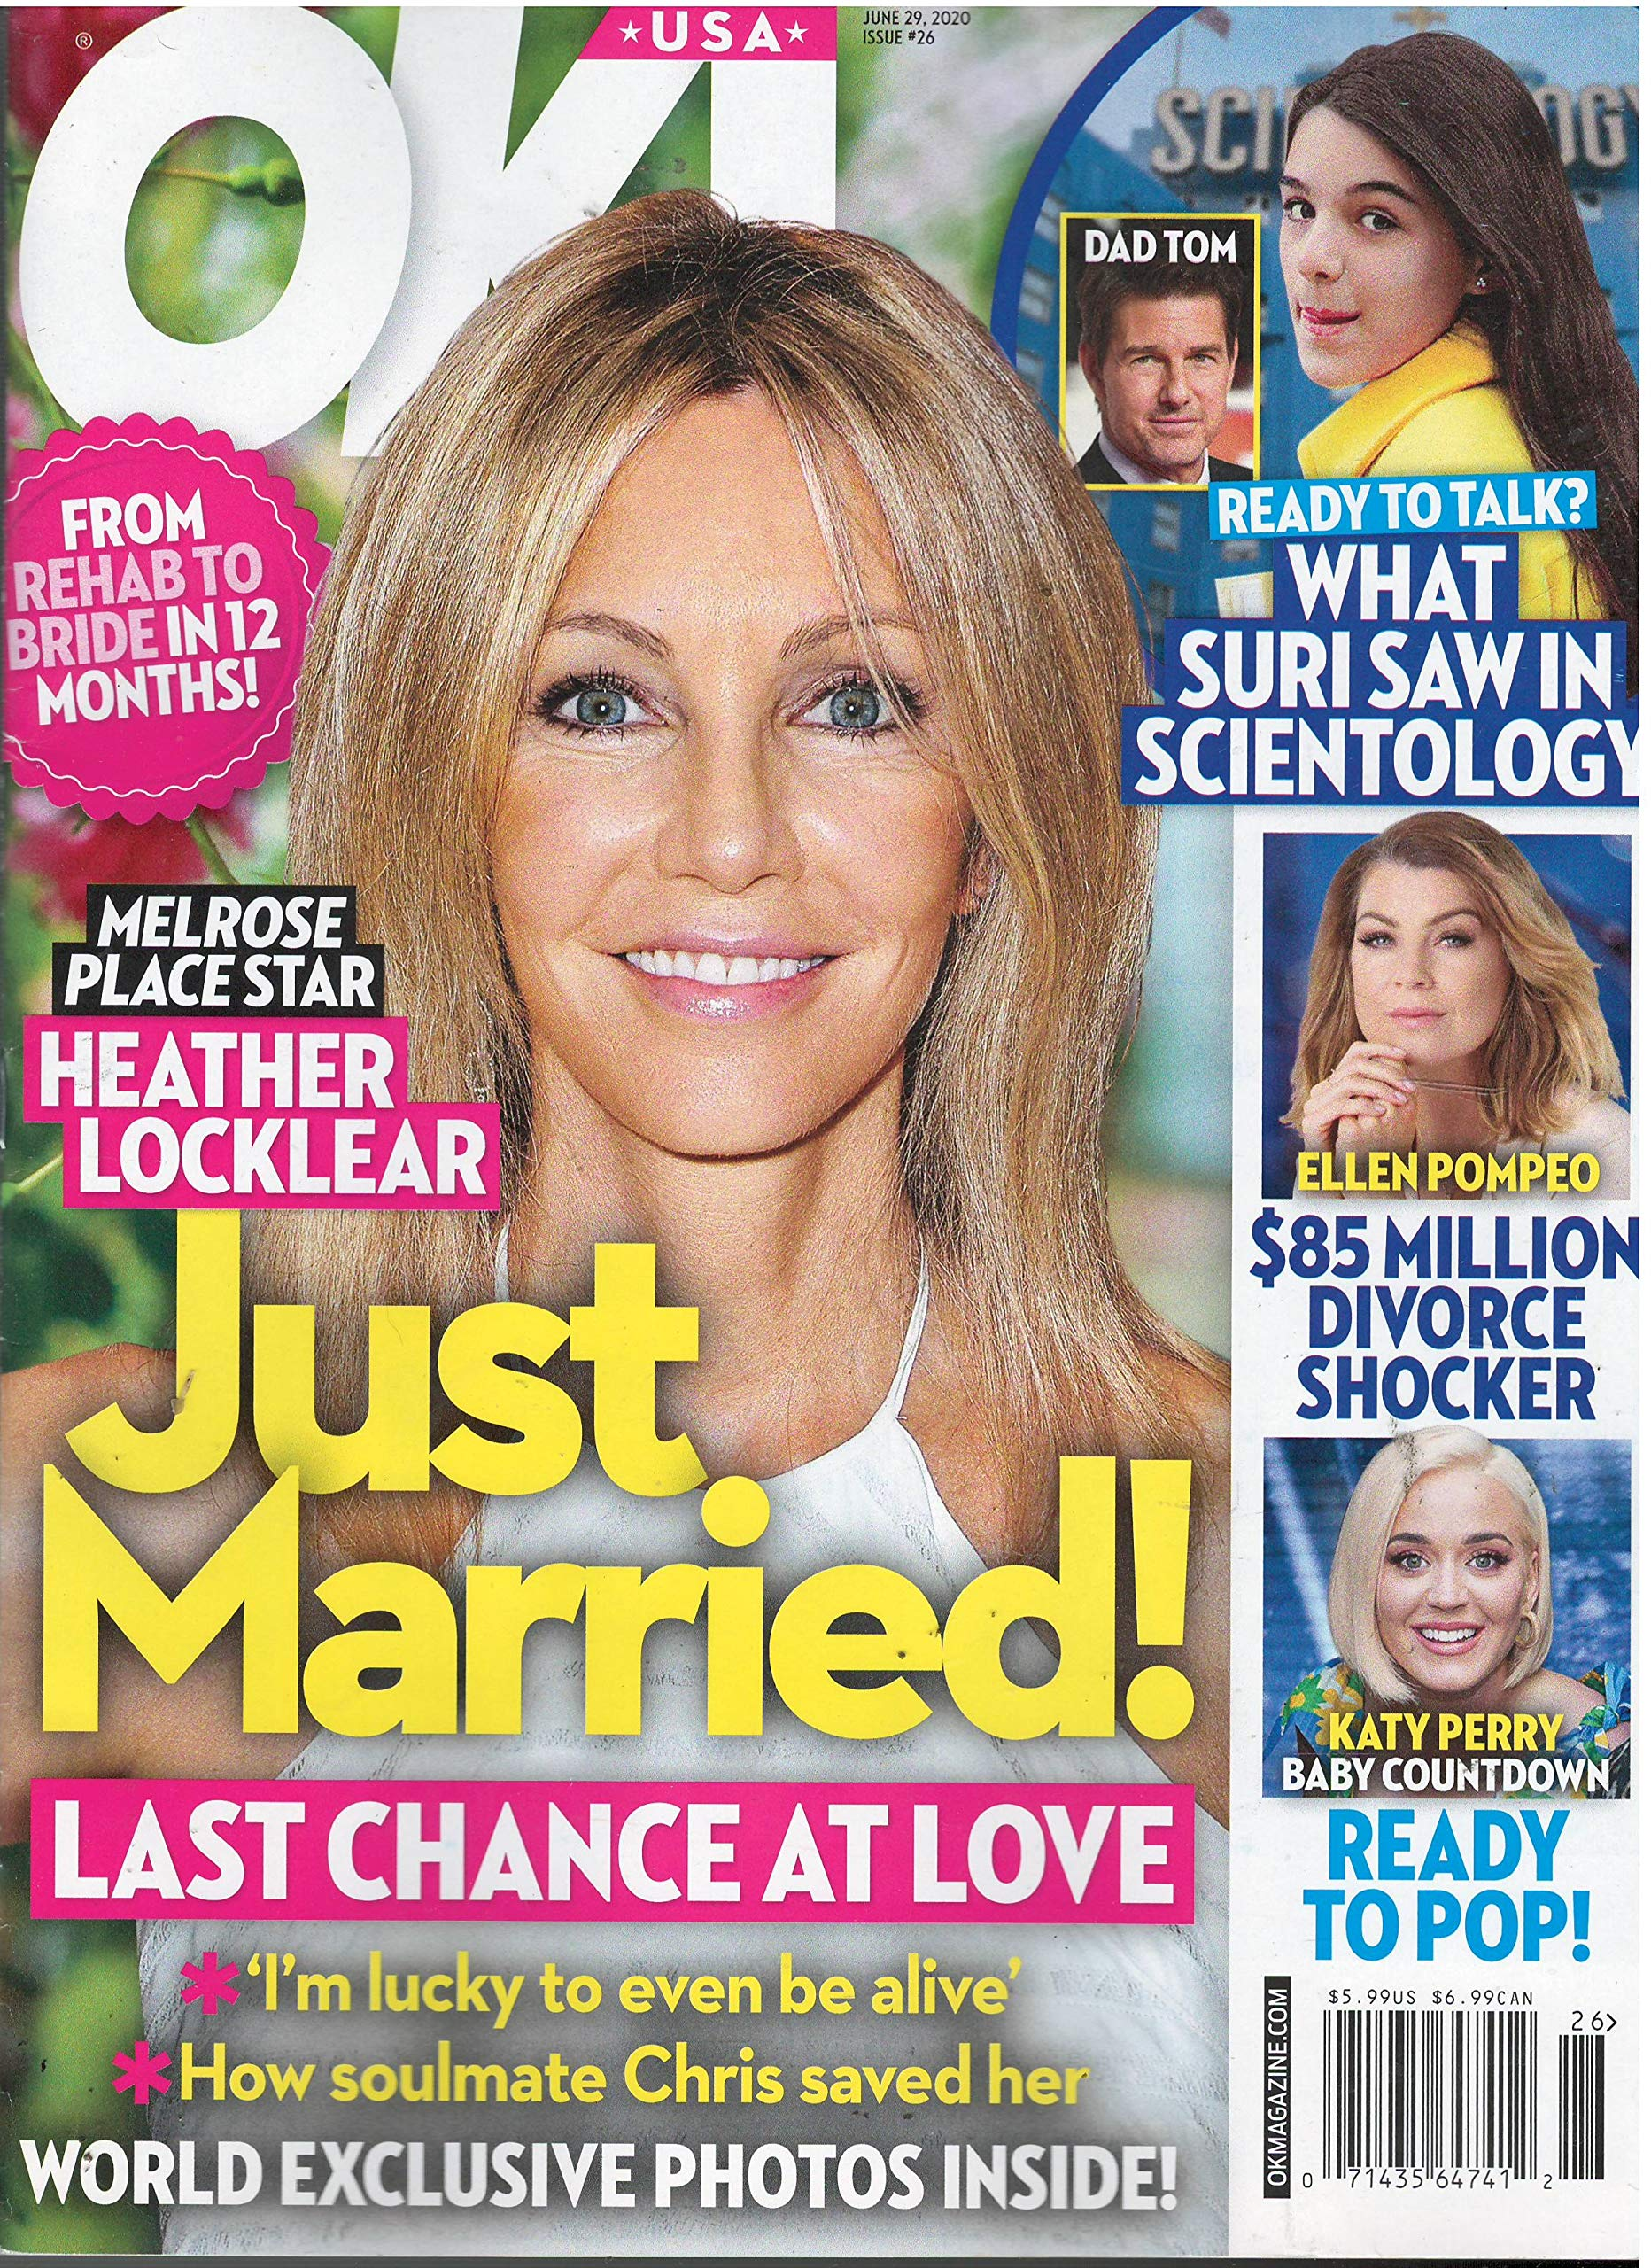 Who was heather locklear married to